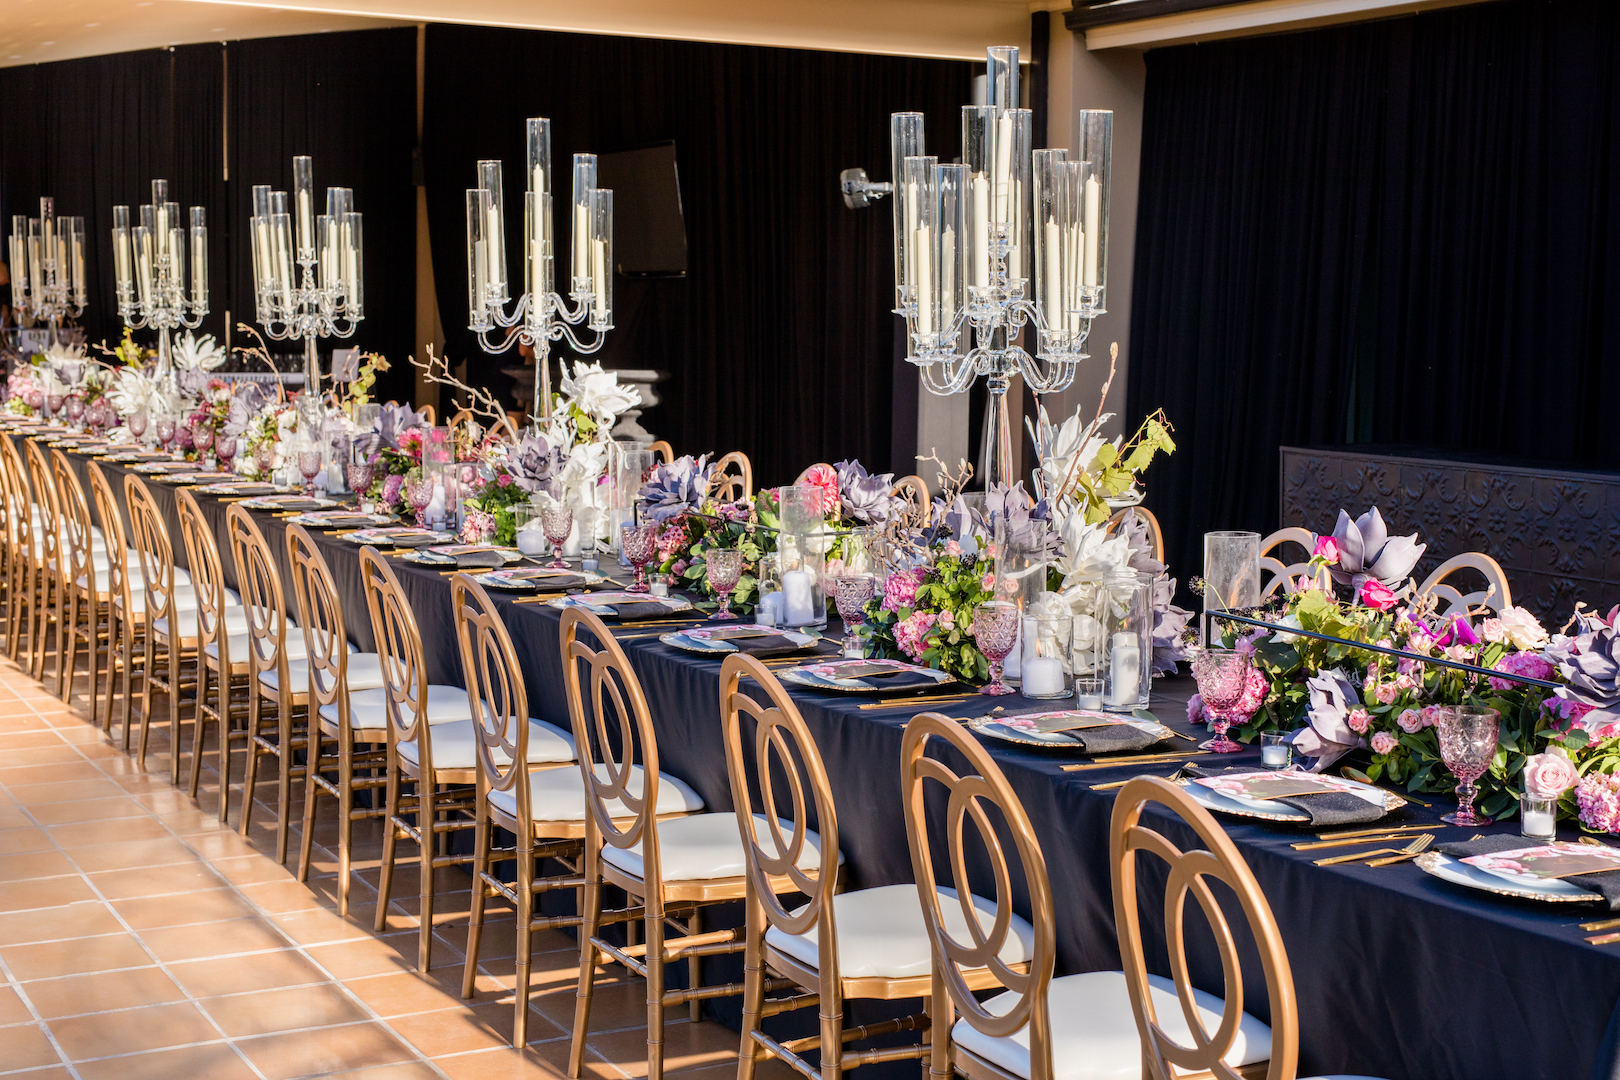 love, hope, flowers, lhflowers, wedding flowers, flowers, Sydney, Sydney florist, sweet 16th birthday, private function, garden roses, dinner party flowers, candelabras, long table centrepieces, glenorie,